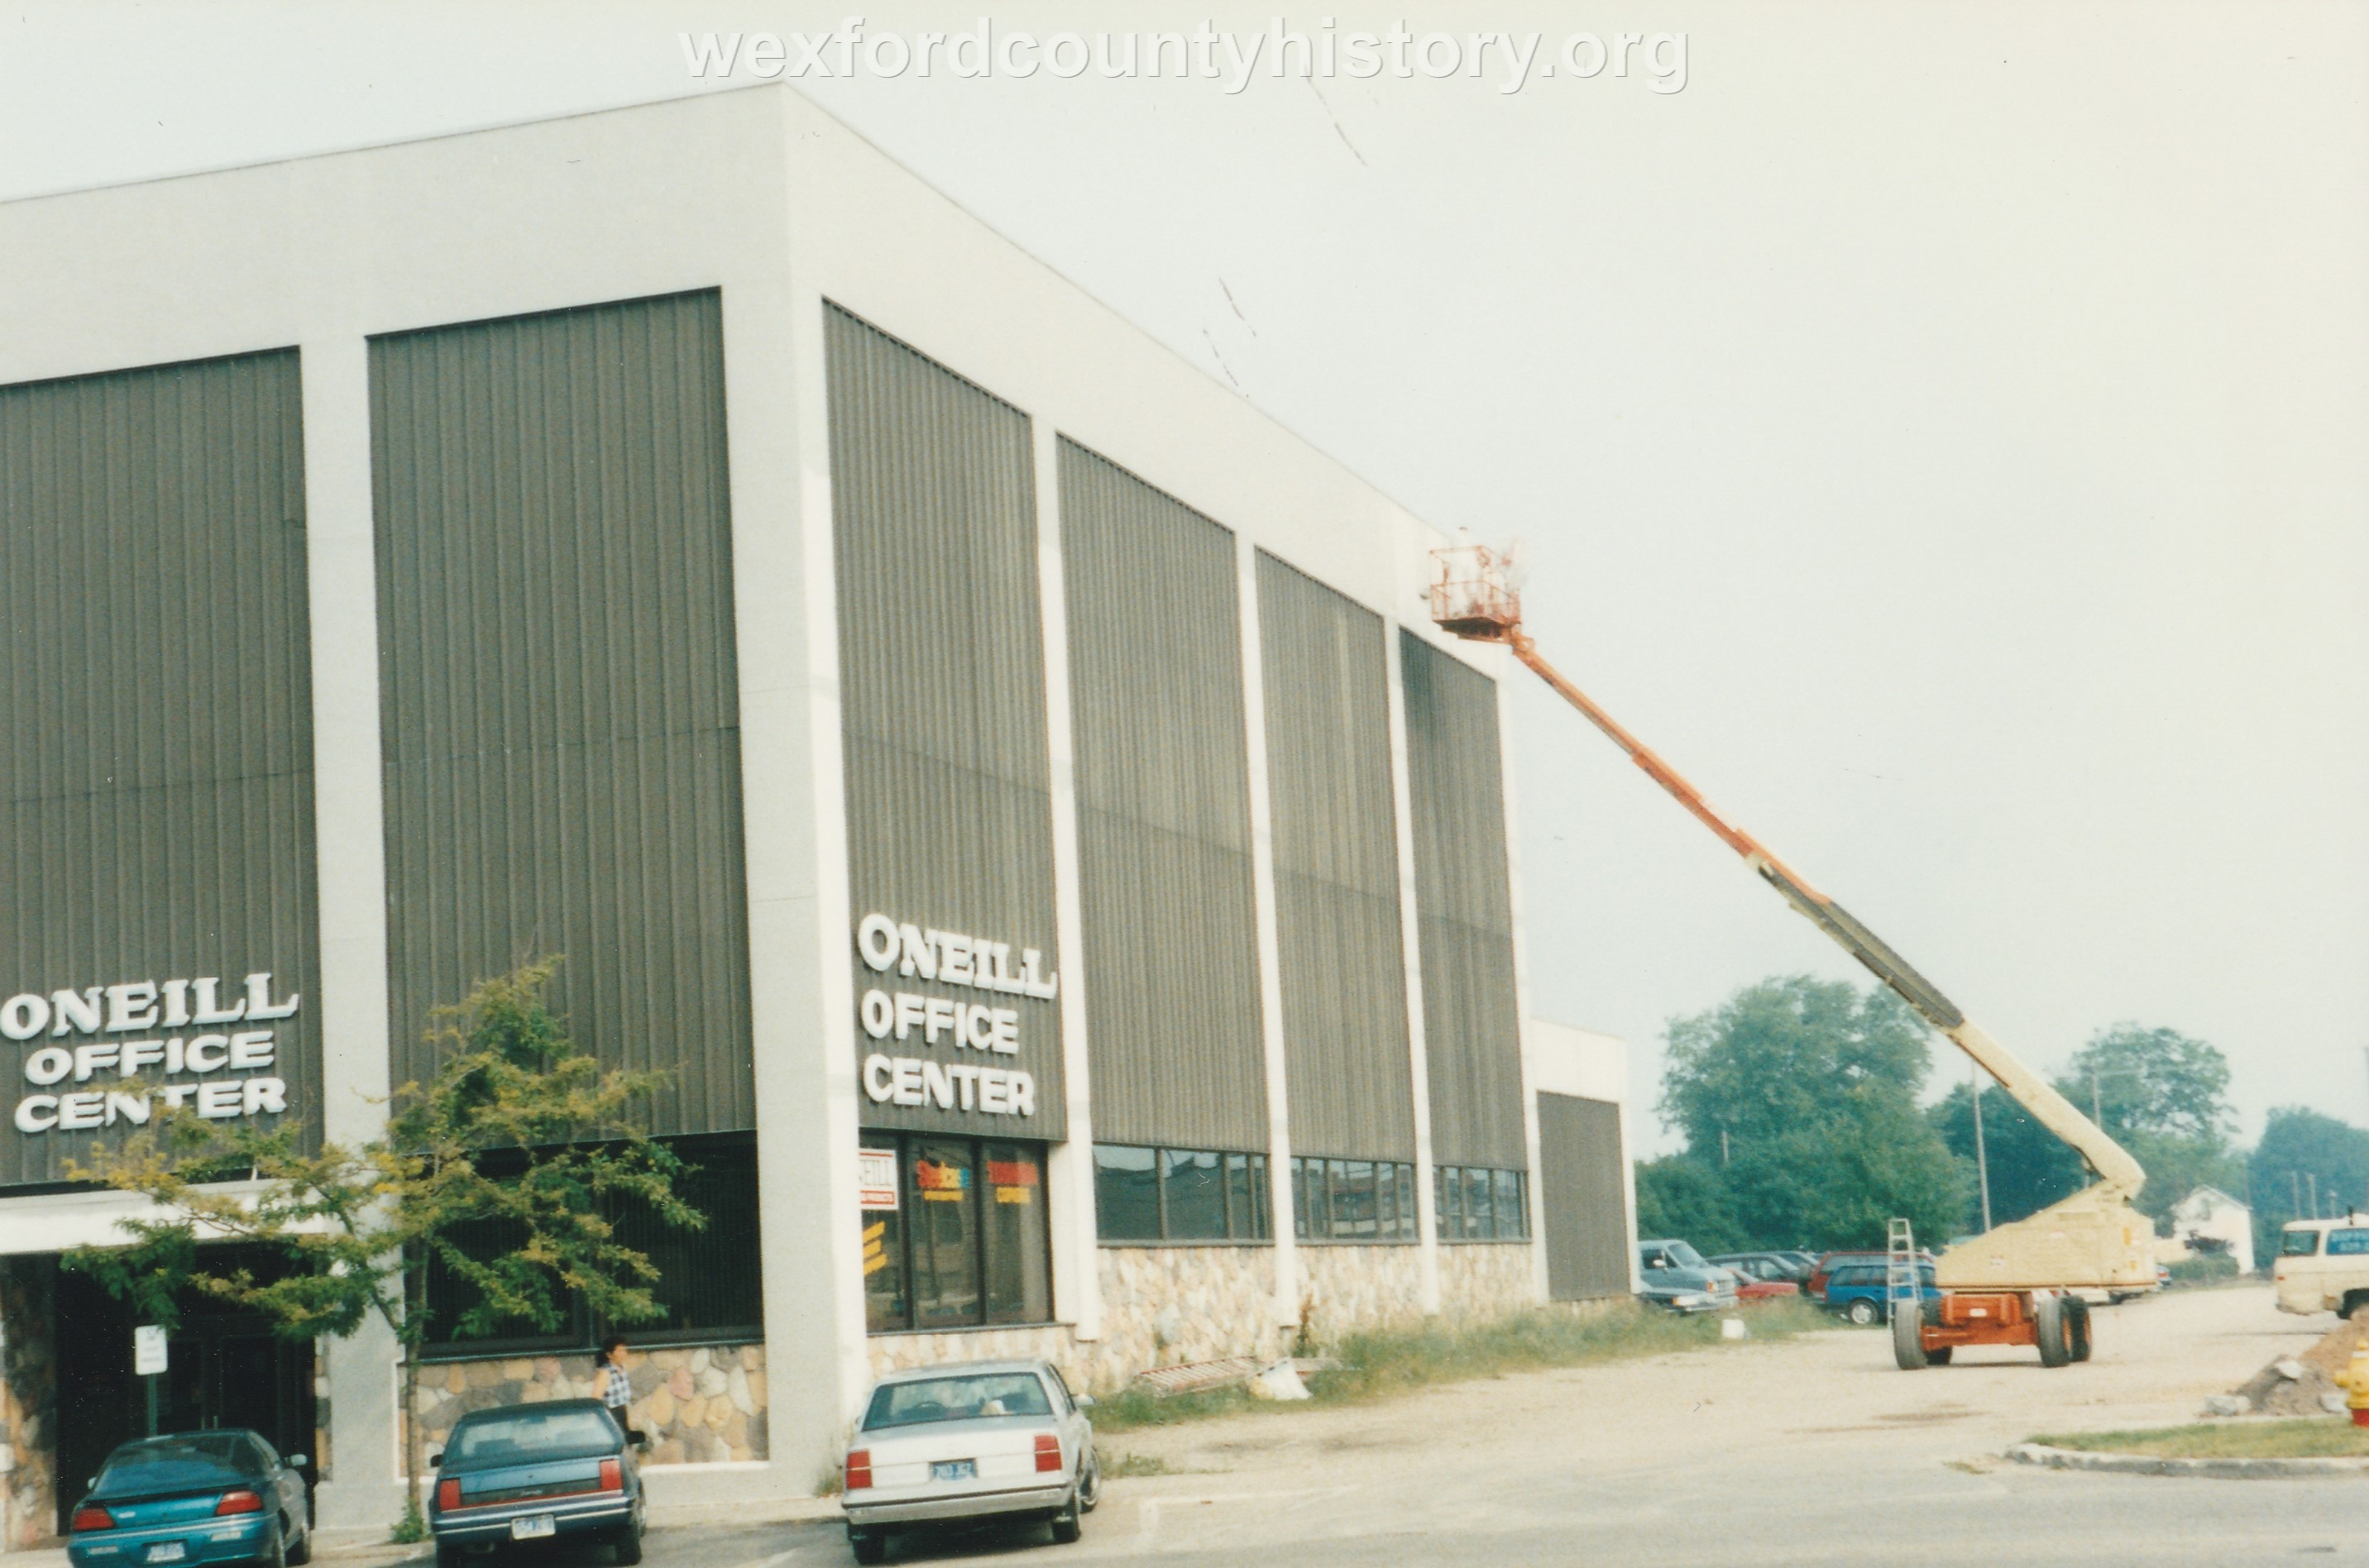 O'Neill's Business Products